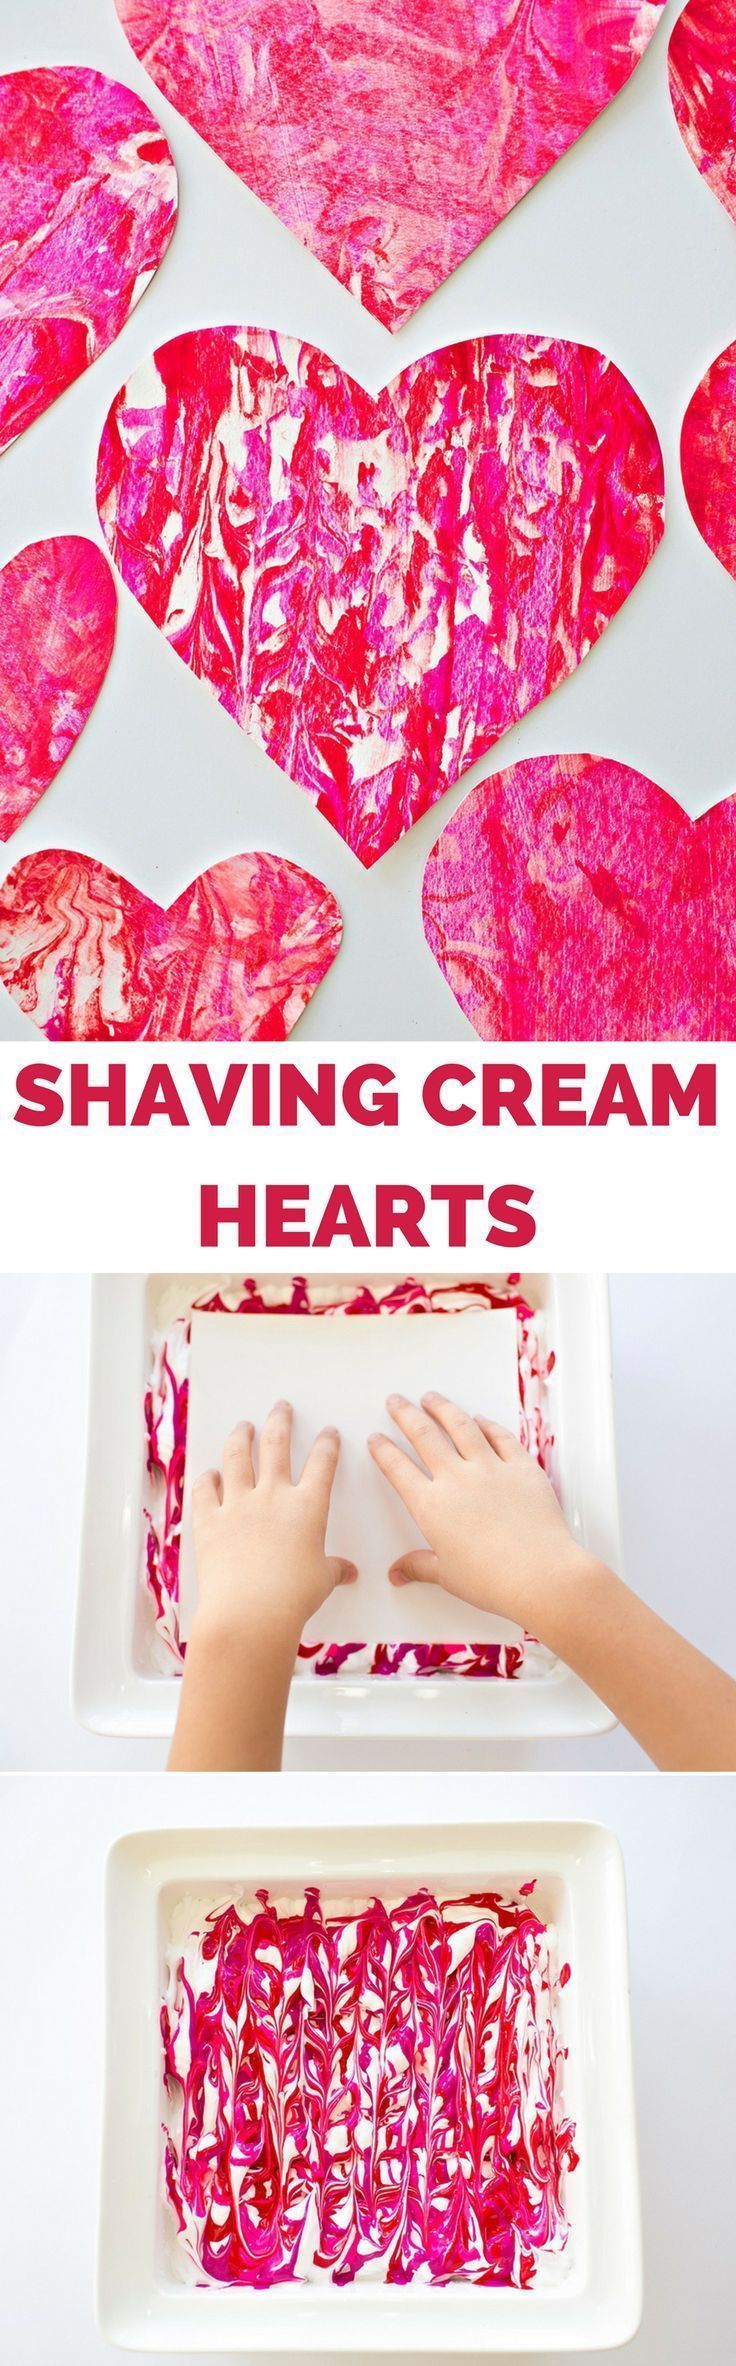 Valentine Shaving Cream Hearts. Fun process art project for kids to make handmade paper valentine prints, cards, garlands and favors!